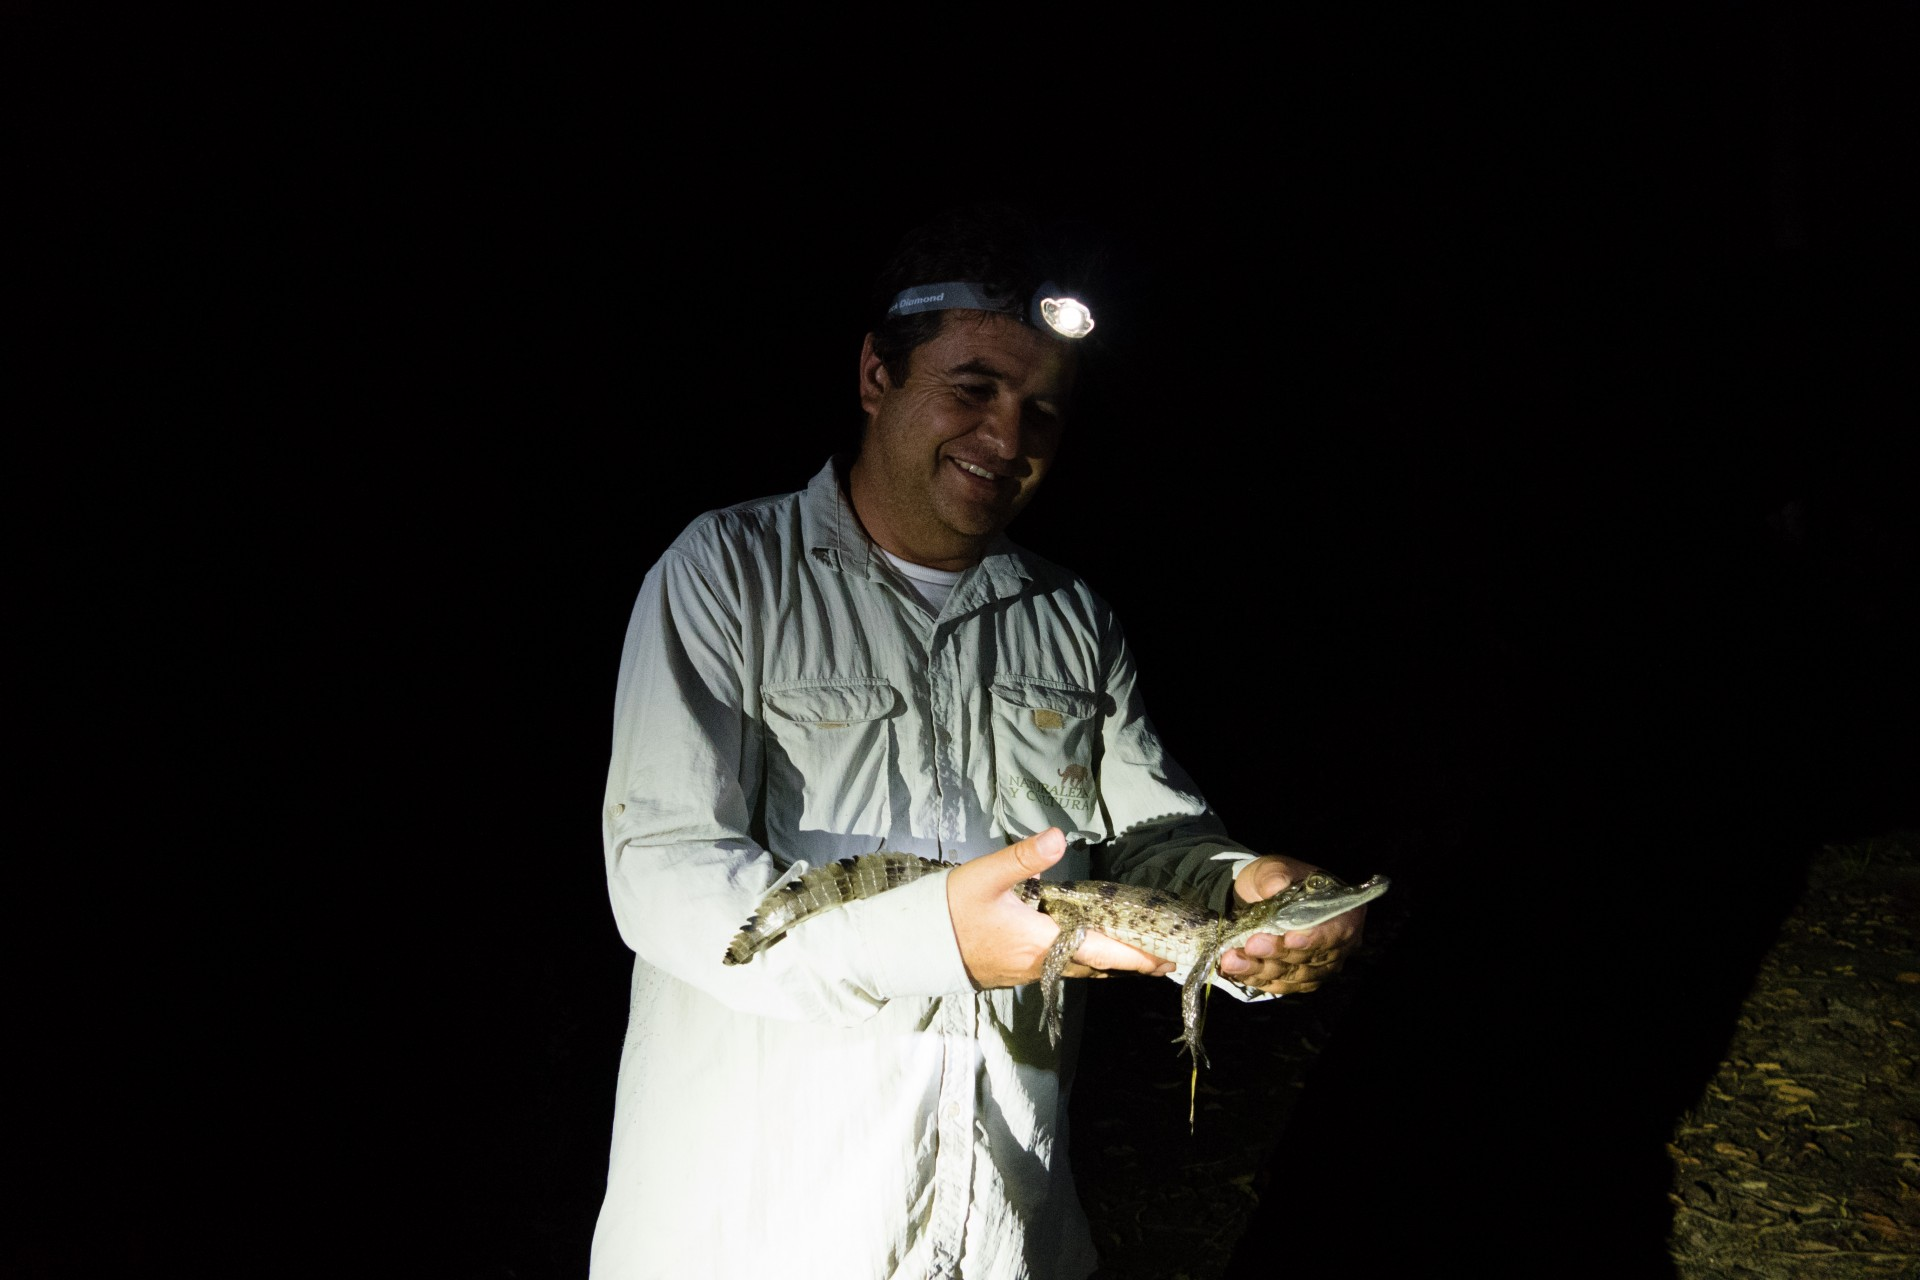 Renzo with a caiman